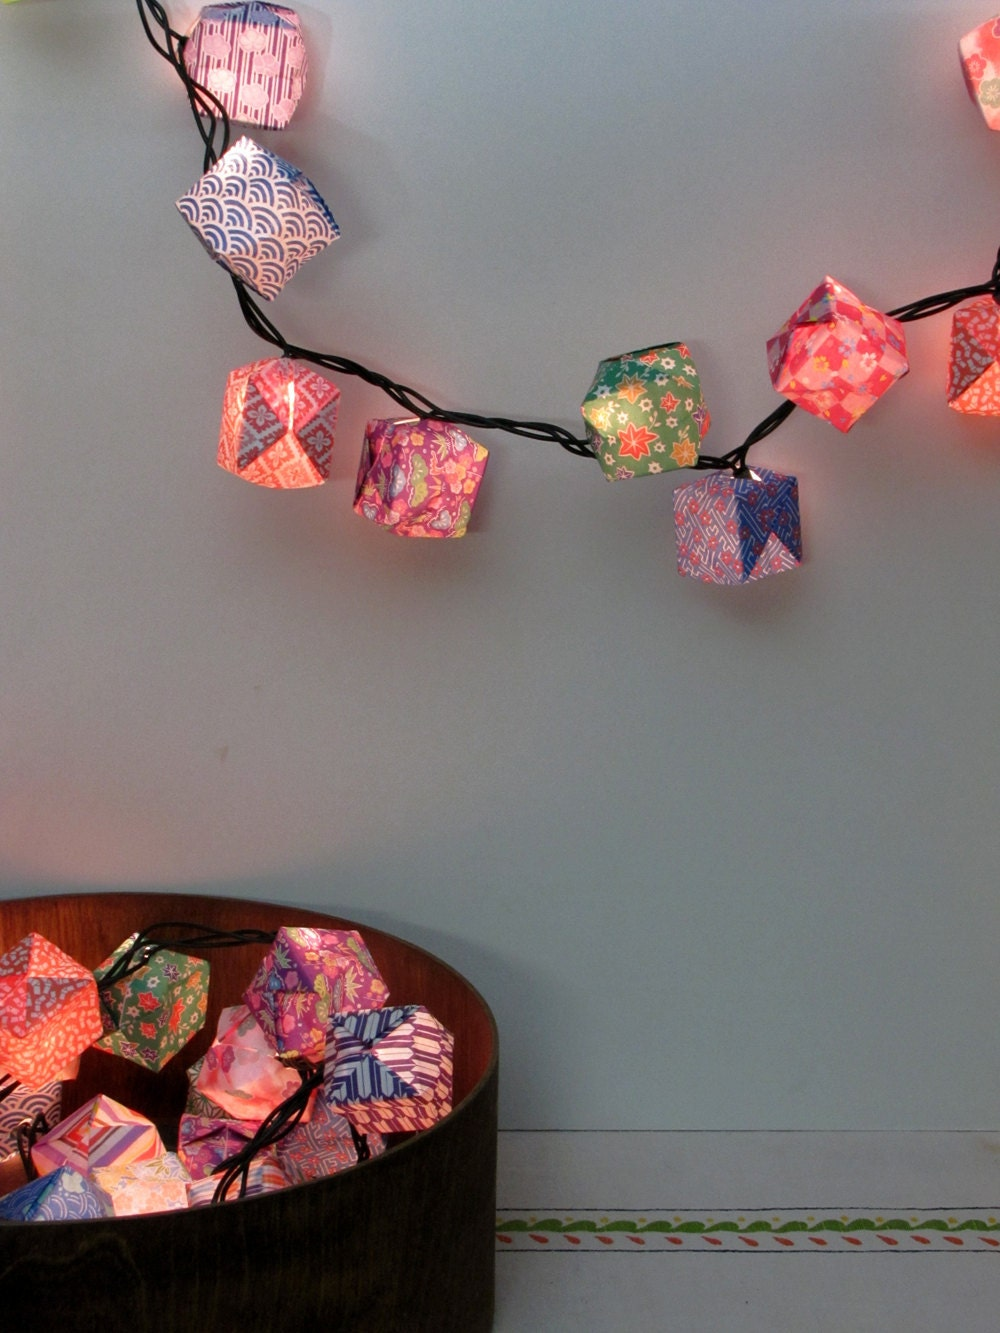 50-Origami Paper Lanterns - Assorted Patterns